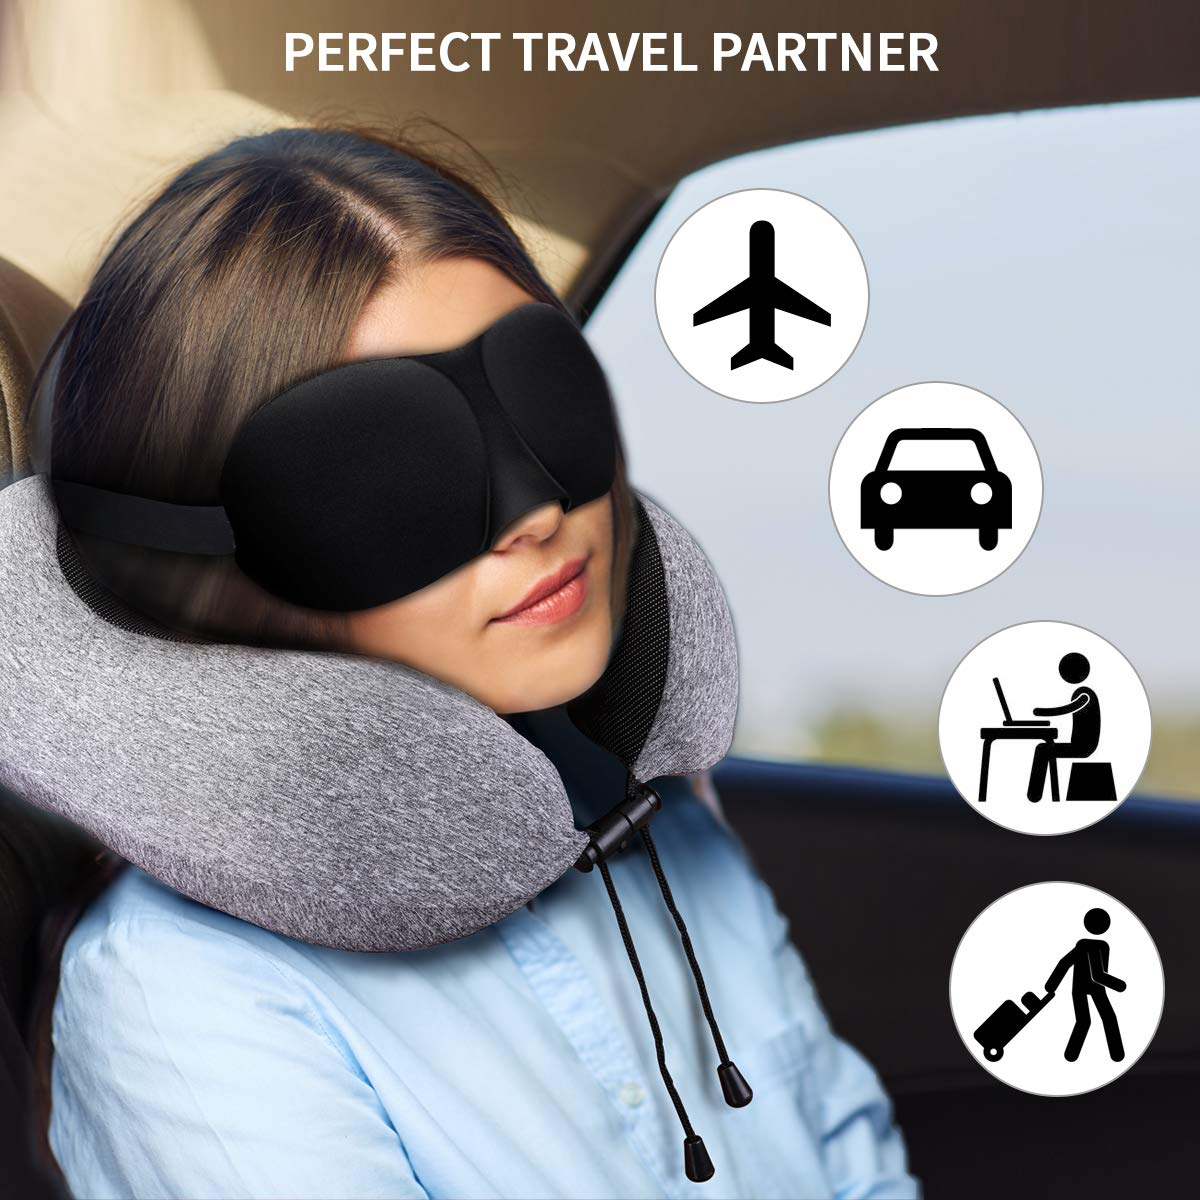 Keenstone Travel Pillow 100% Pure Memory Foam Neck Pillow, Comfortable & Breathable Cover - Machine Washable, Airplane Travel Kit with 3D Sleep Mask, Earplugs, and Luxury Bag